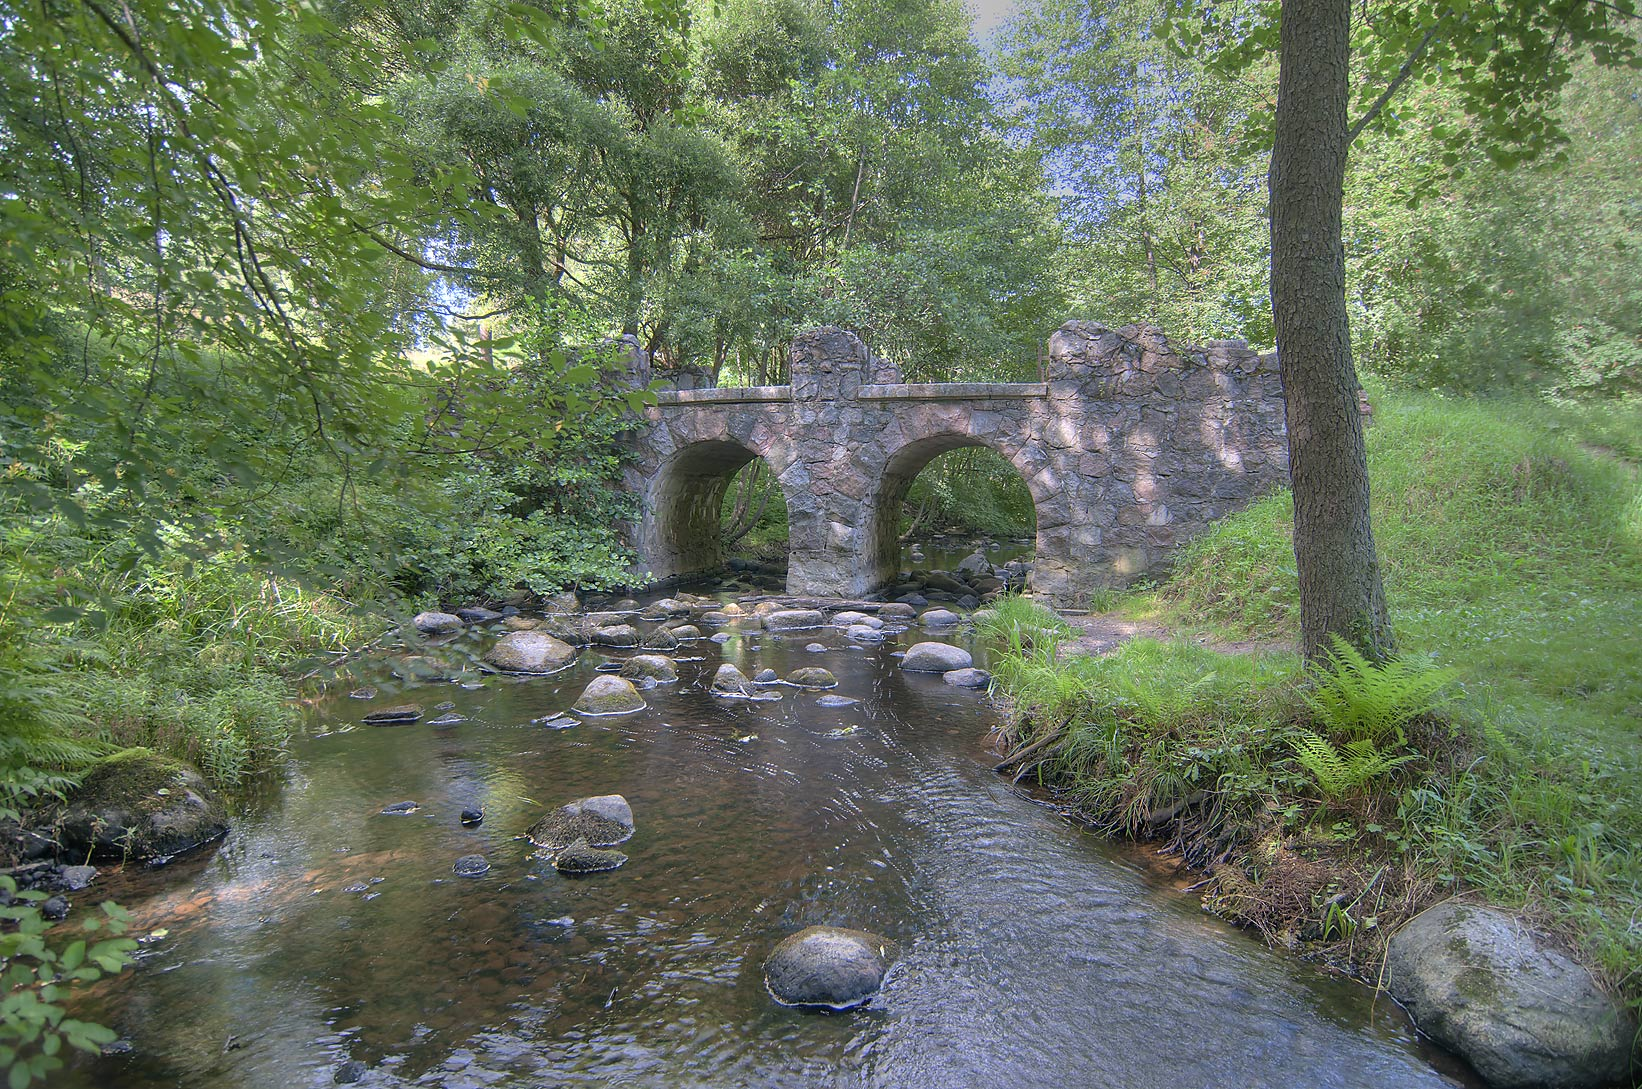 Stone bridge of Karasta River in the park...miles west from St.Petersburg, Russia